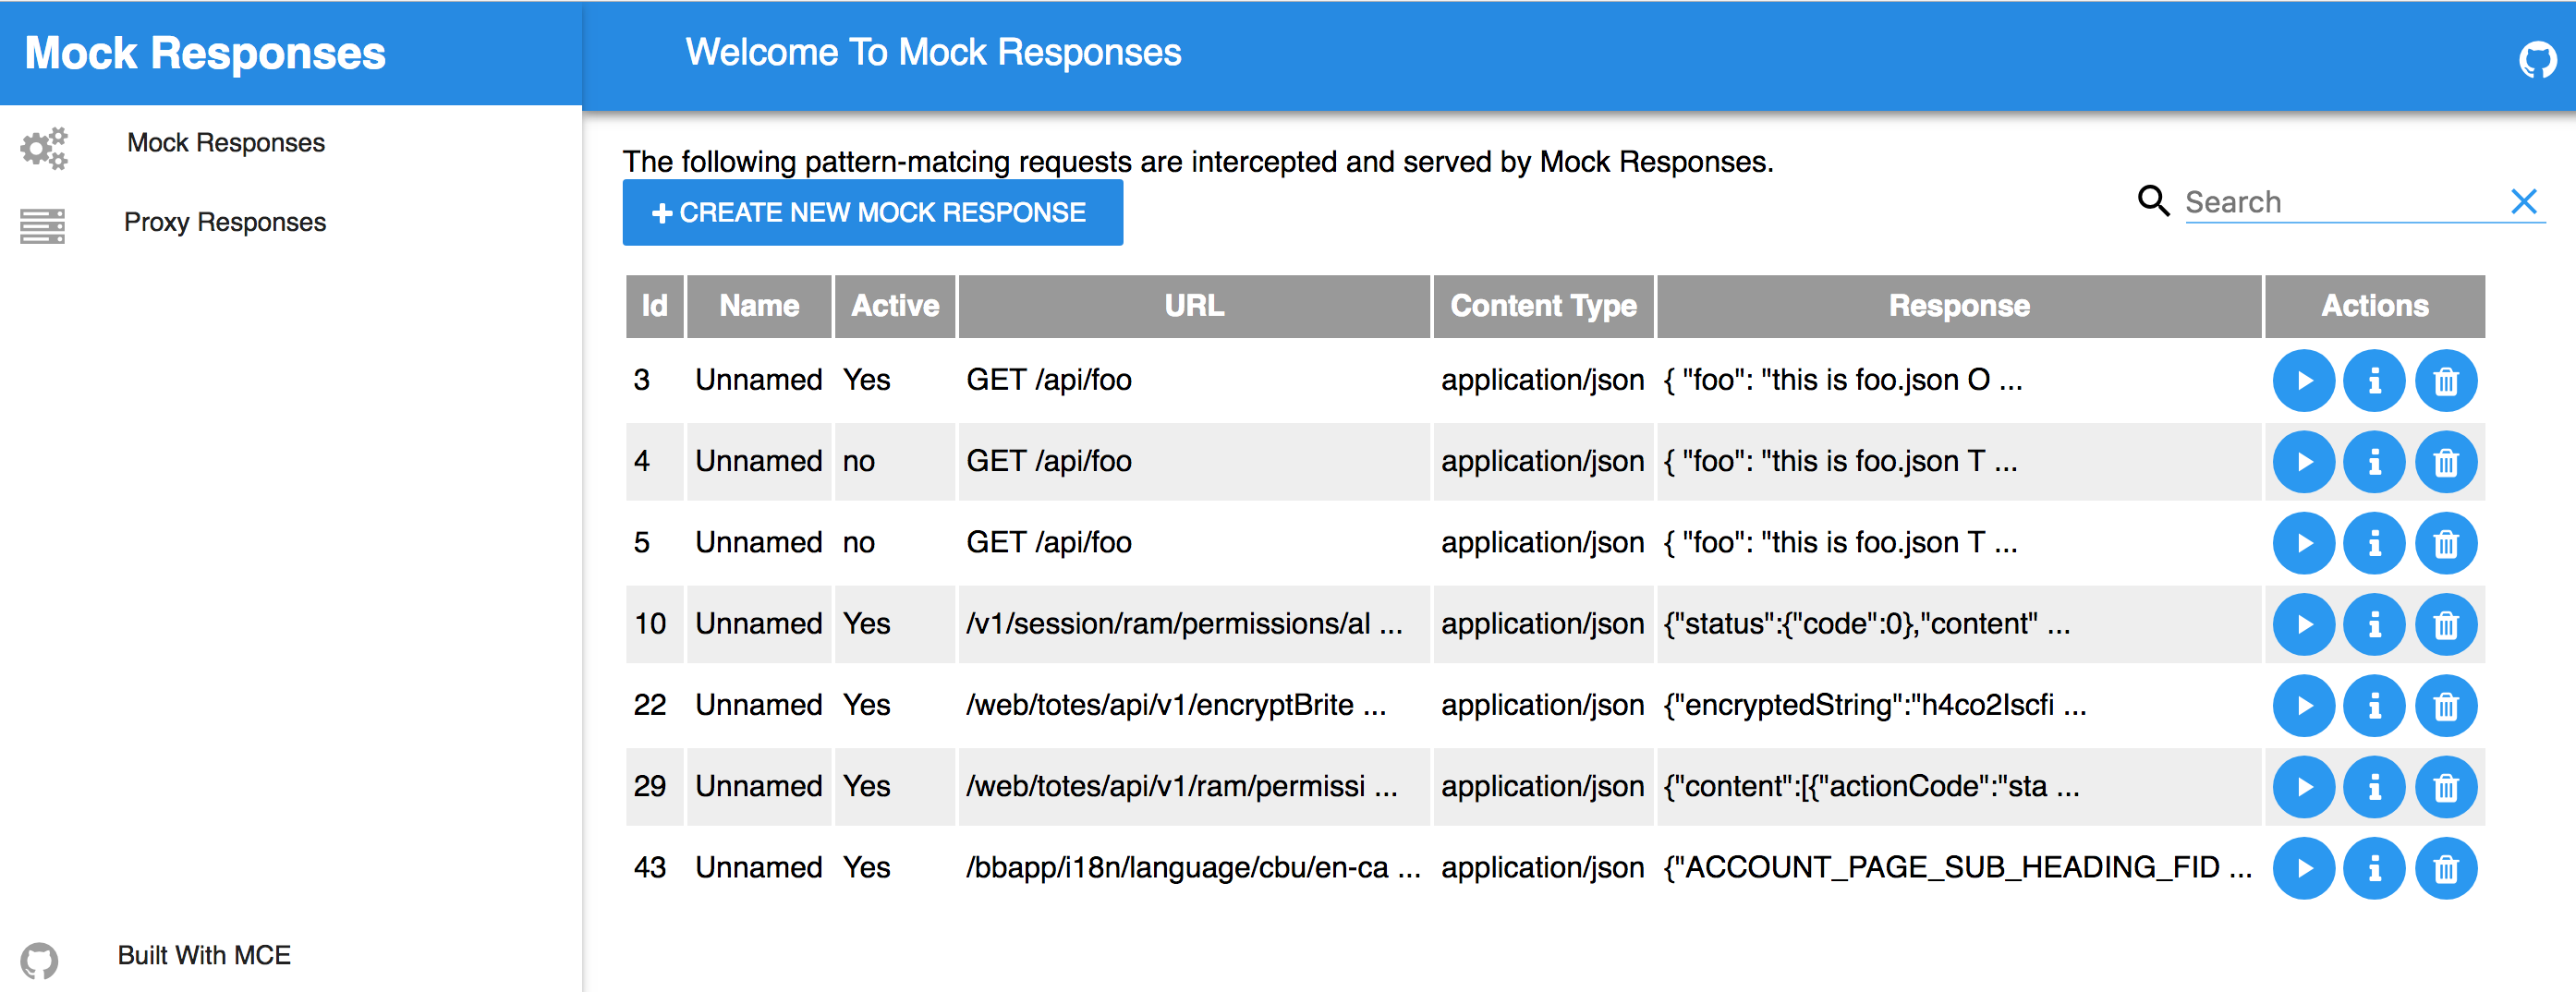 mock-responses/README md at master · allenhwkim/mock